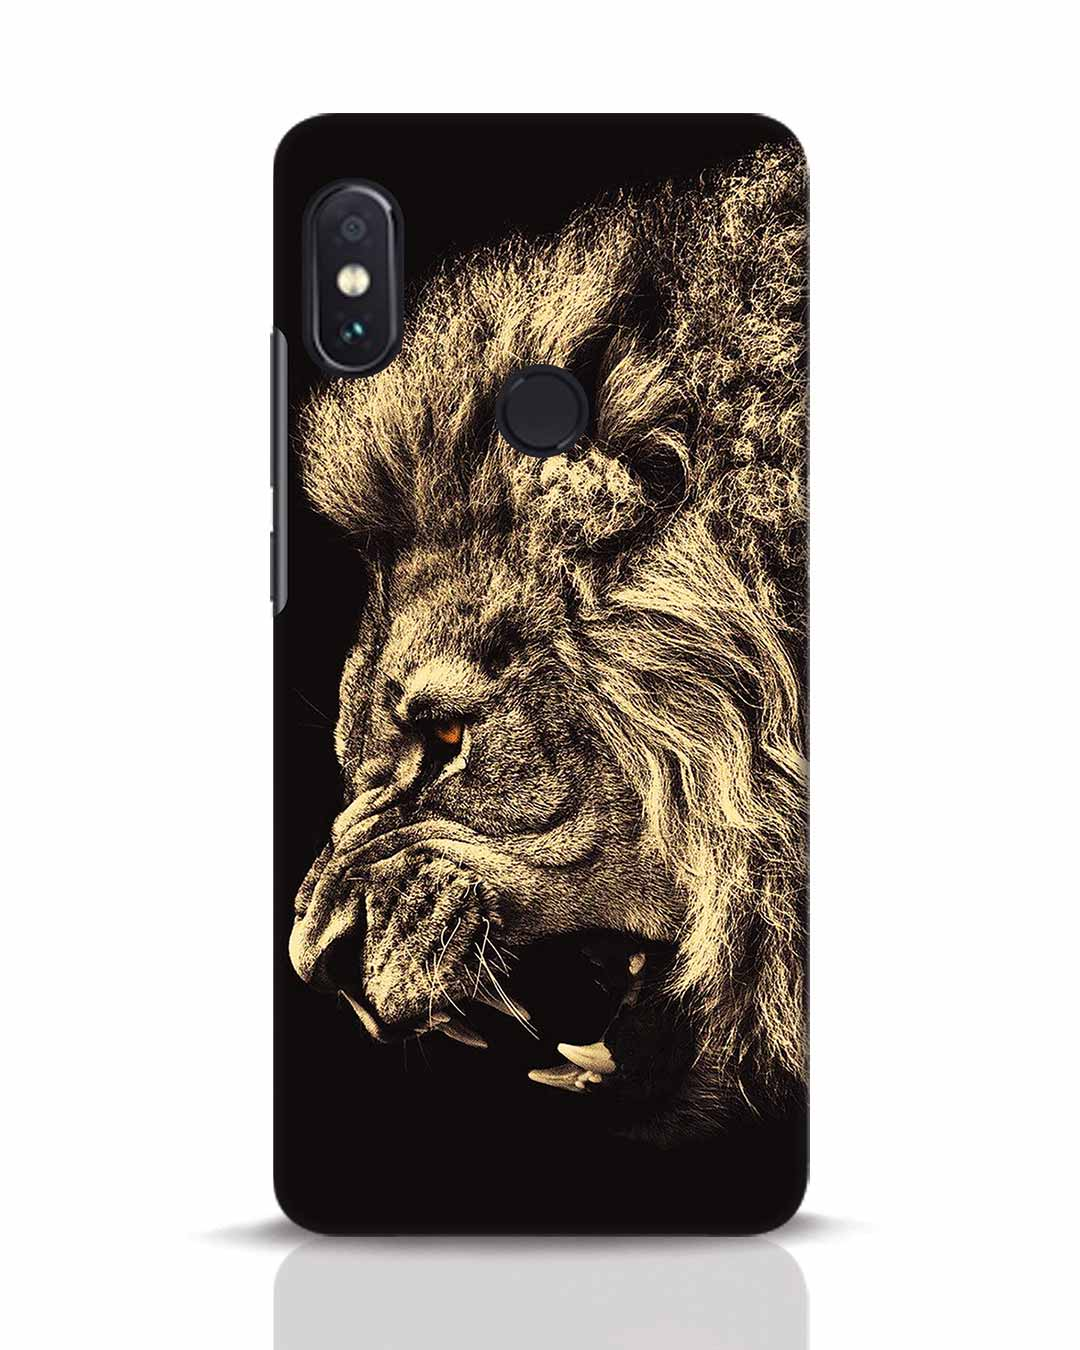 b9b005d8d42 Buy Lep Xiaomi Redmi Note 5 Pro Mobile Case Online at ₹299.0 - Bewakoof.com